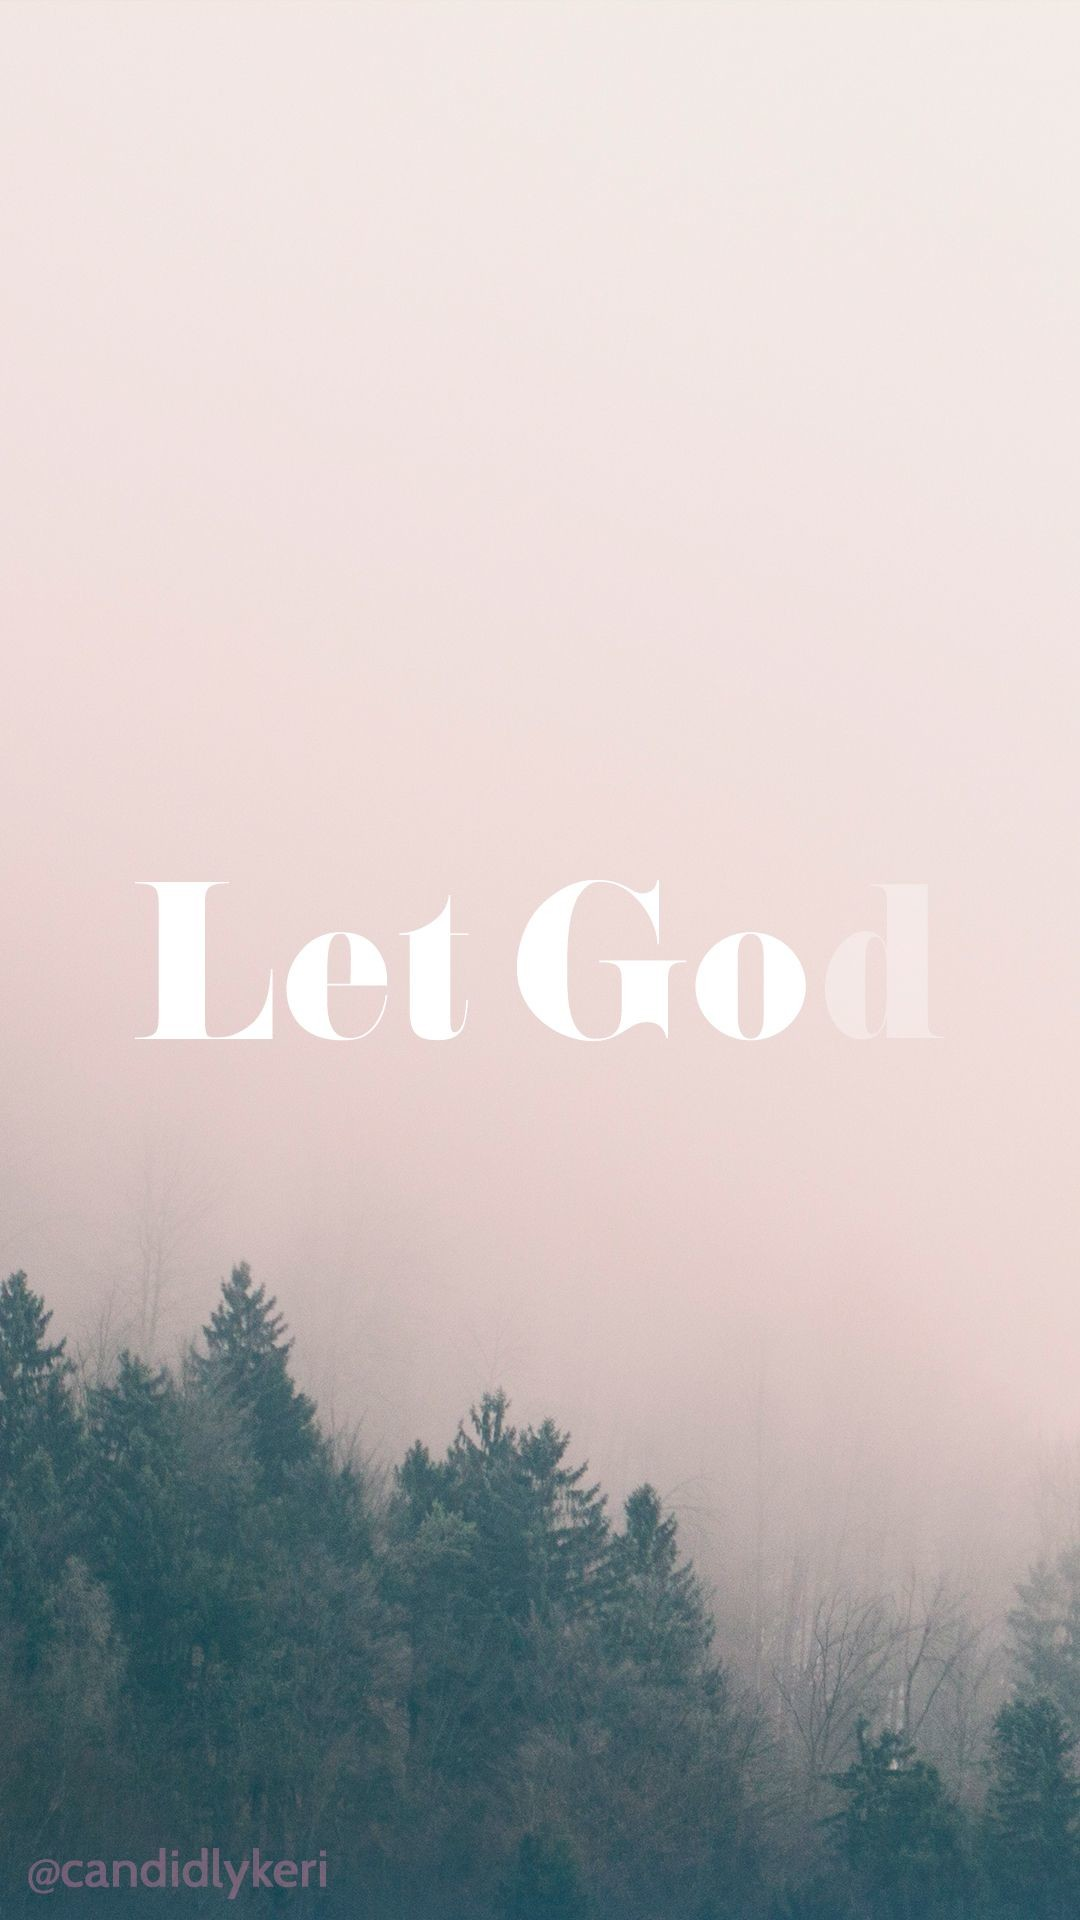 1080x1920 Let Go and Let God quote nature fog wallpaper with black and white flowers  free download for iPhone android or desktop background on the blog!